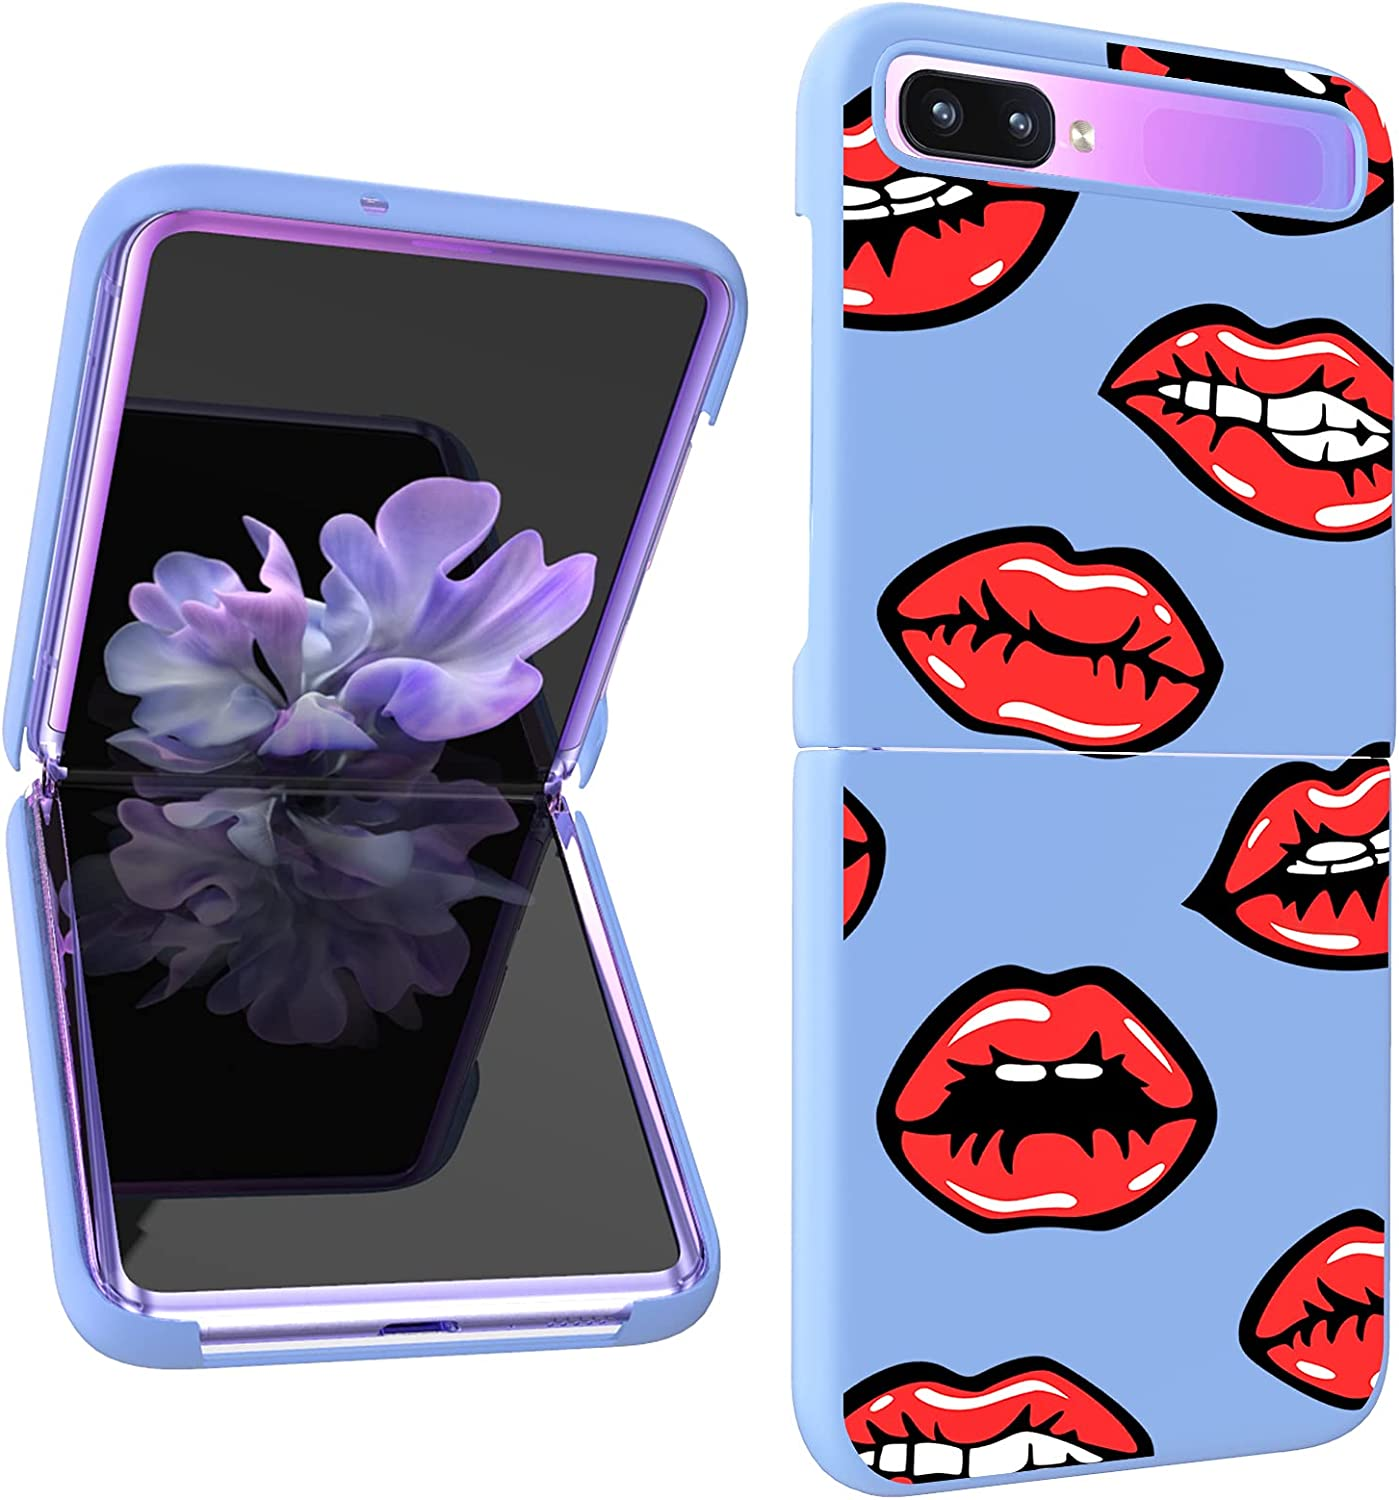 AIGOMARA Compatible with Samsung Galaxy Z Flip 5G Hard PC Case Red Lips Pattern Anti-Scratch Shockproof Protection Thin Slim Phone Cover for Galaxy Z Flip 5G, Purple